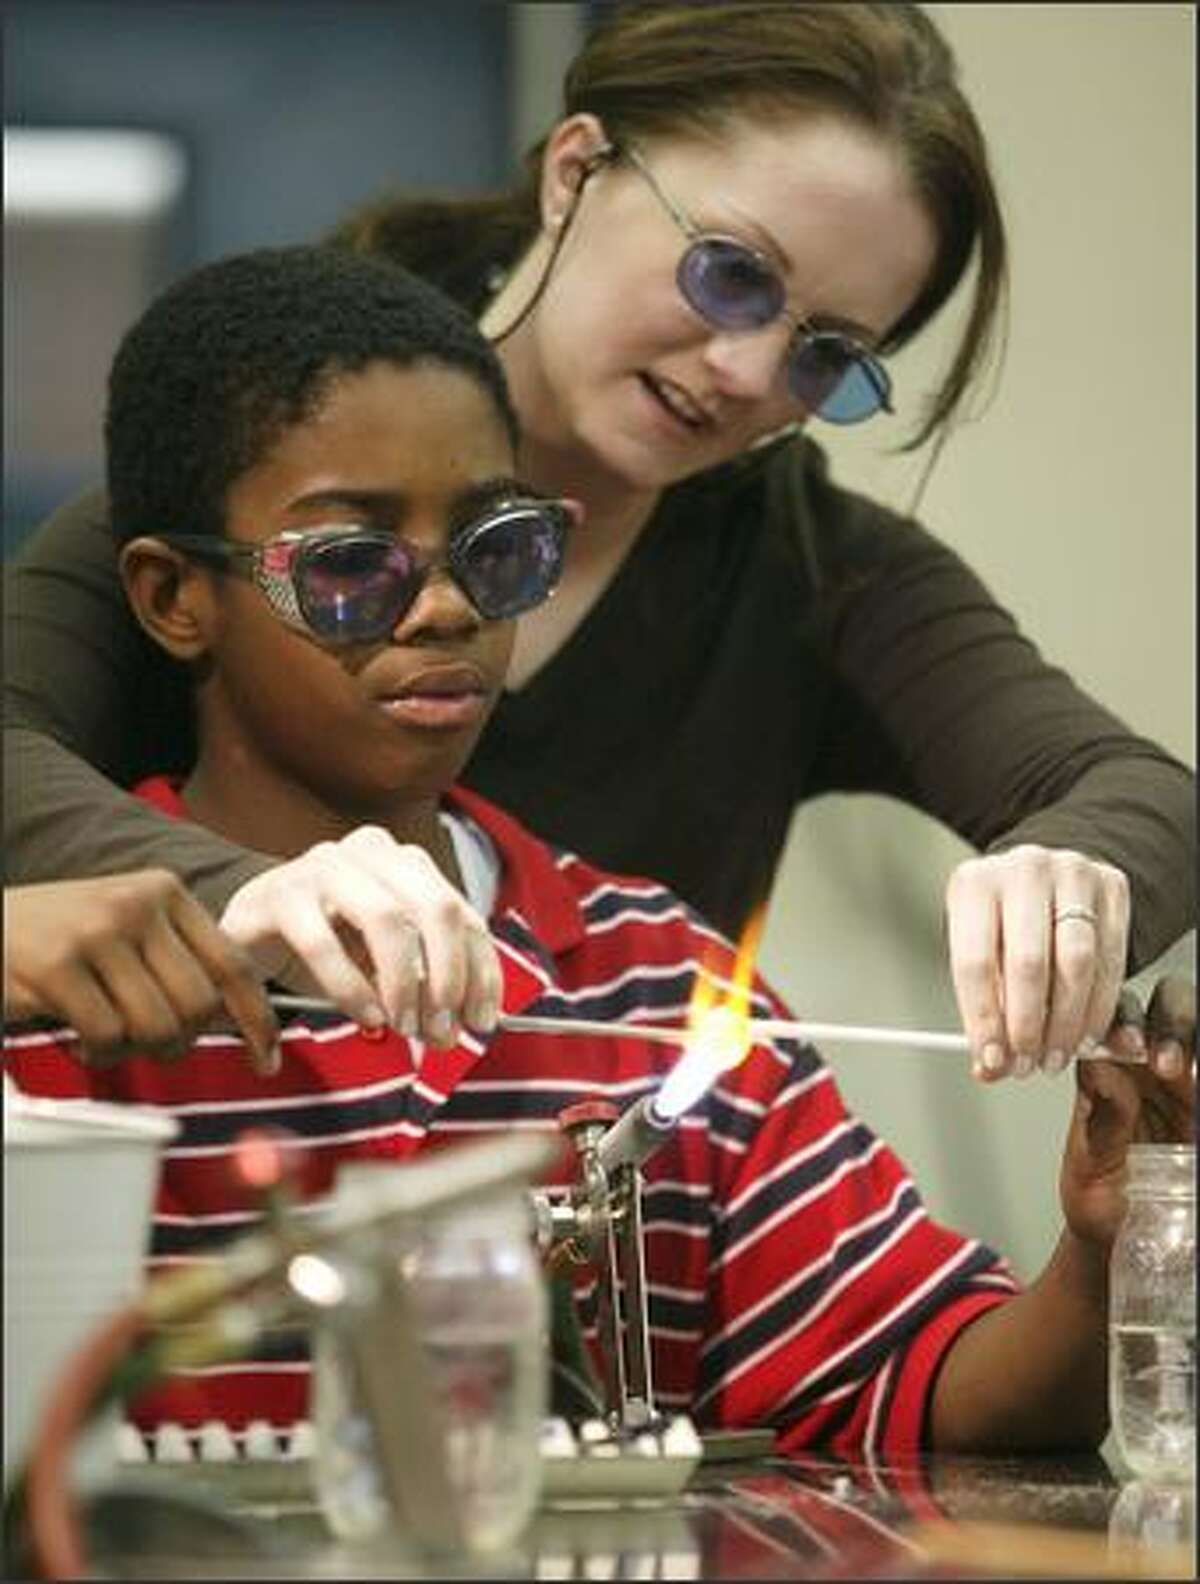 Stacy Frost, an instructor at Pratt Fine Arts Center, helps Washington Middle School student Carl, 12, get started on his glass creation. Frost says the quality of work by the boys